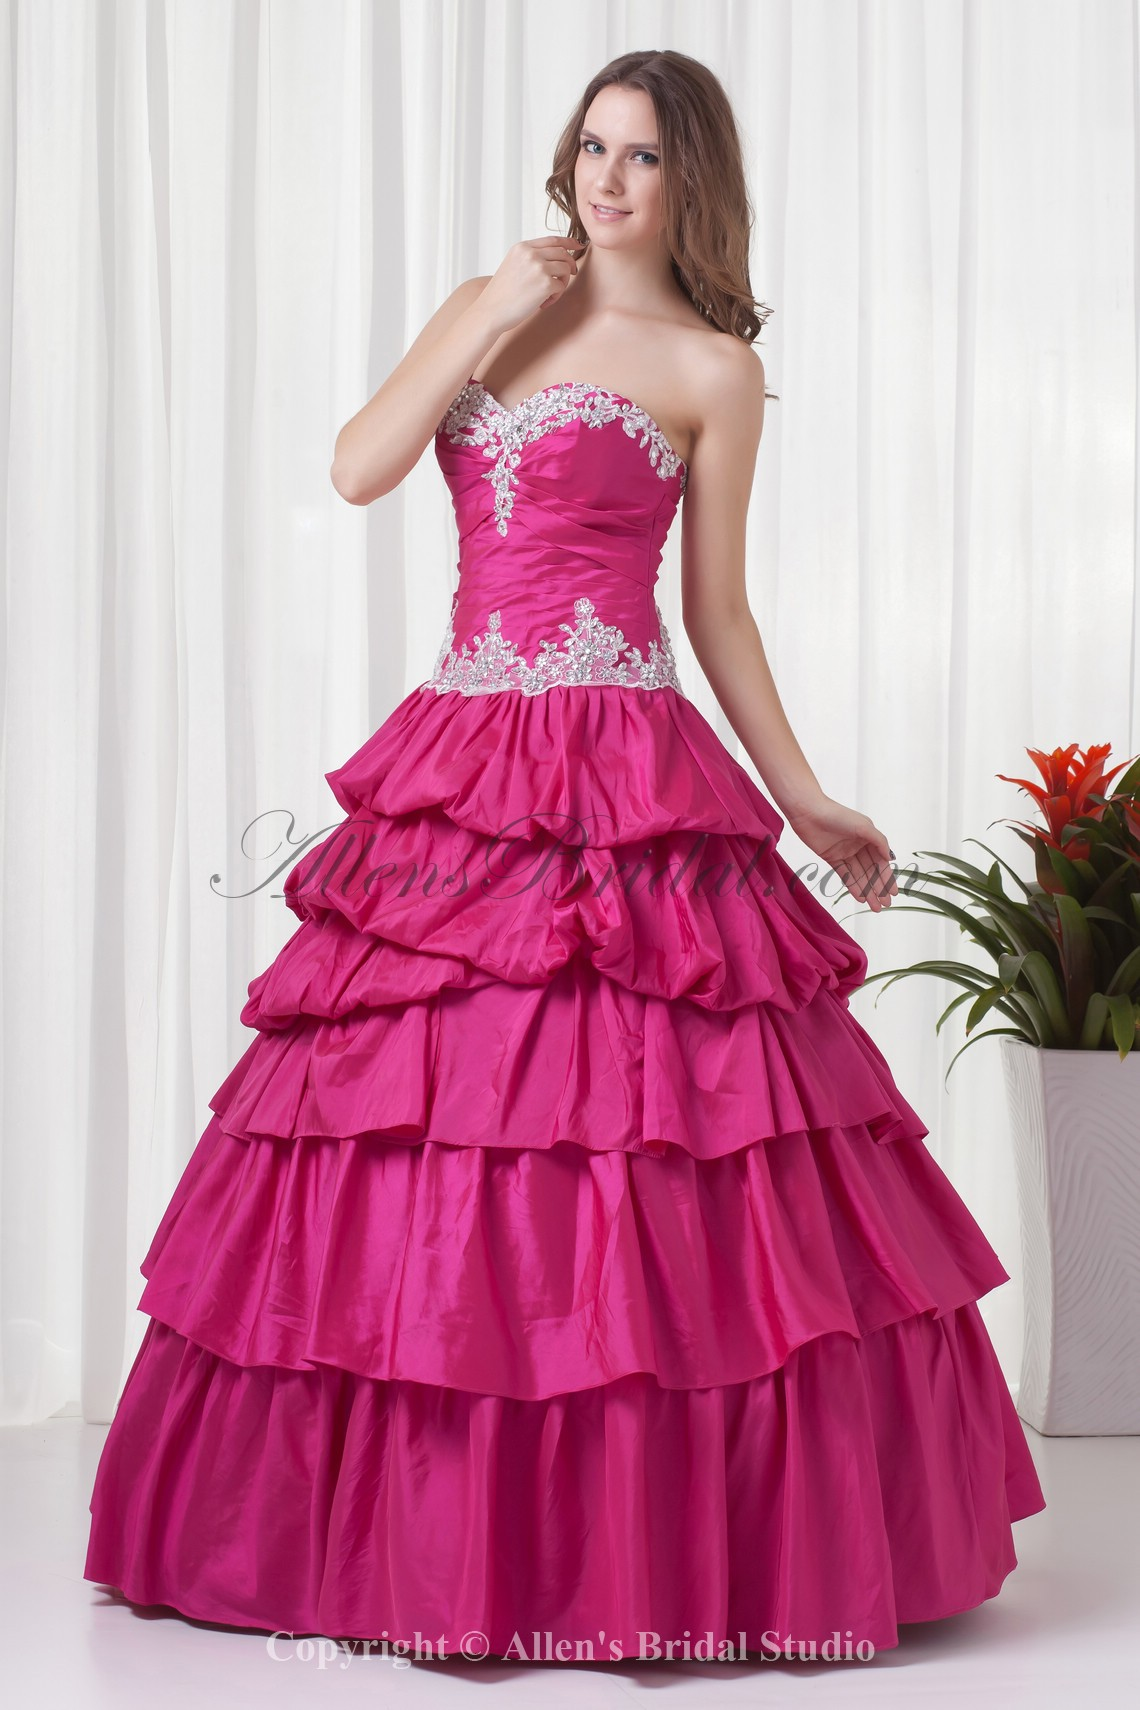 /316-2525/taffeta-sweetheart-ball-gown-floor-length-prom-dress-with-embroidered-and-jacket.jpg